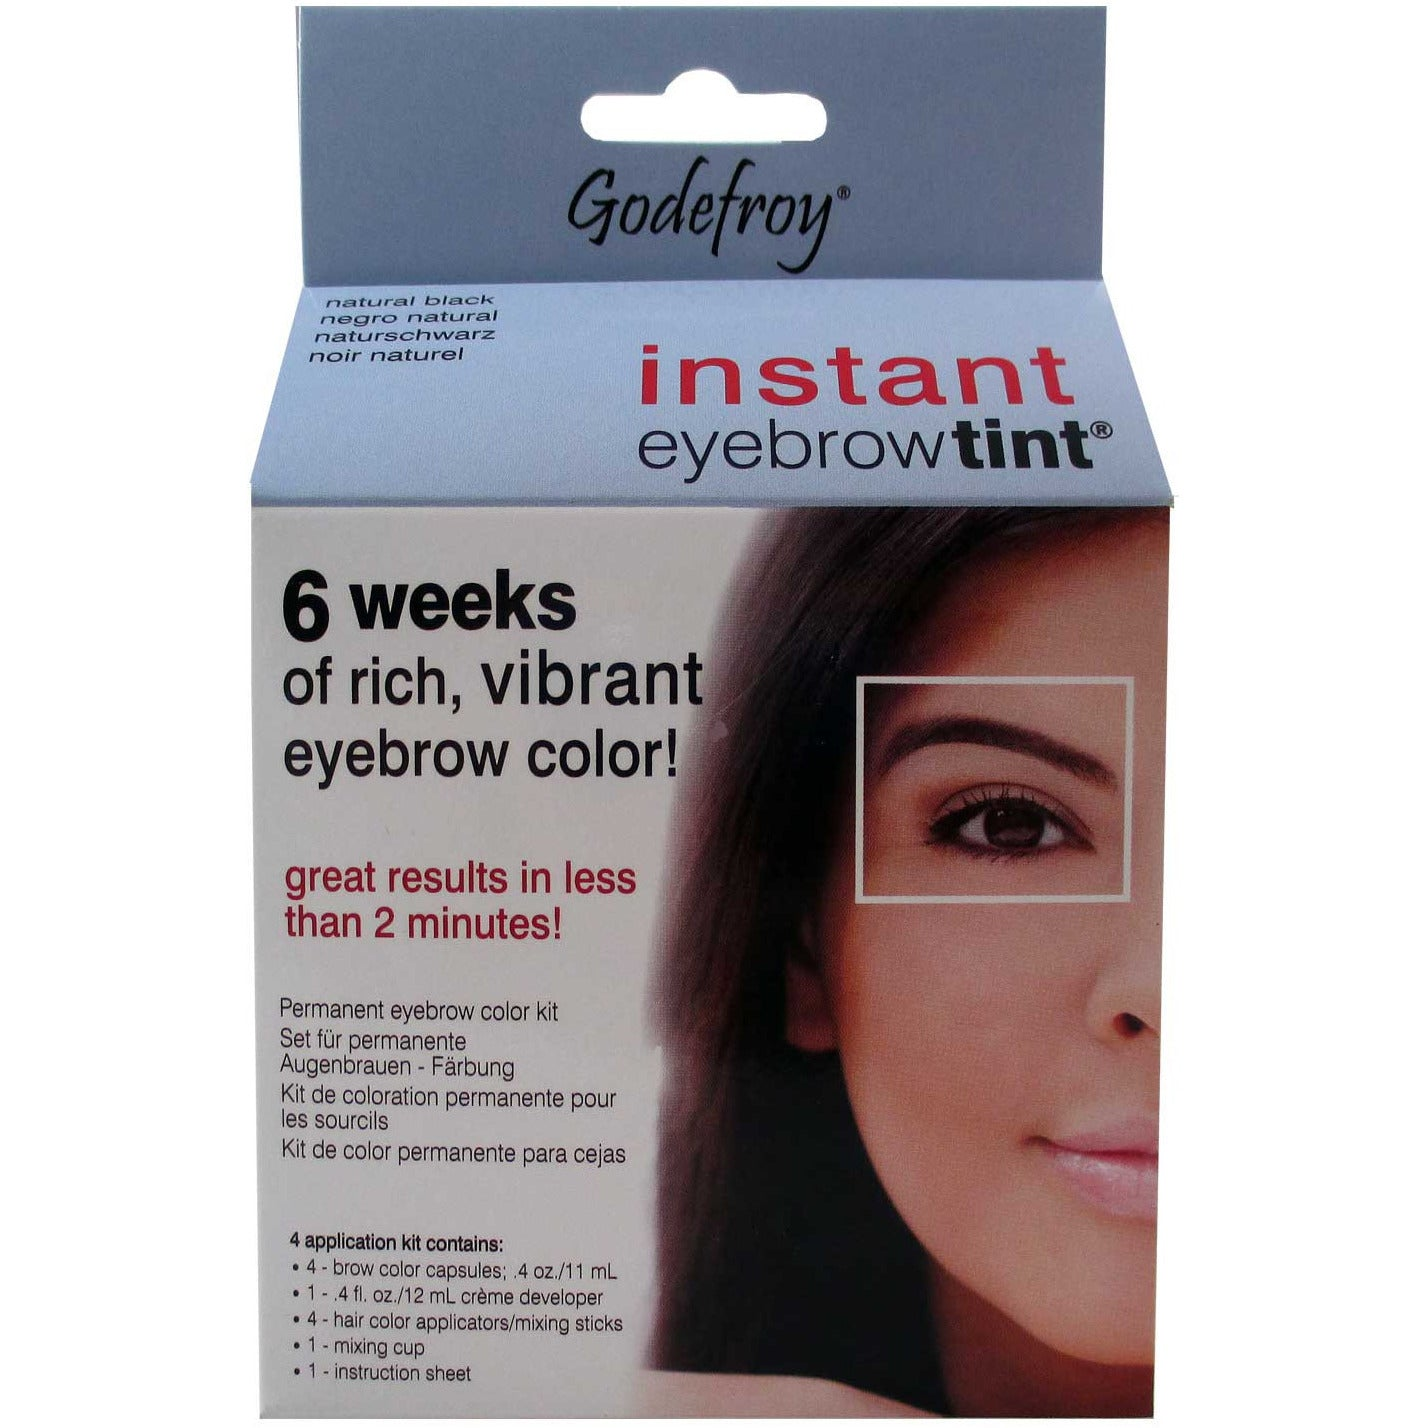 Godefroy INSTANT EYEBROW TINT permanent eyebrow color kit ...